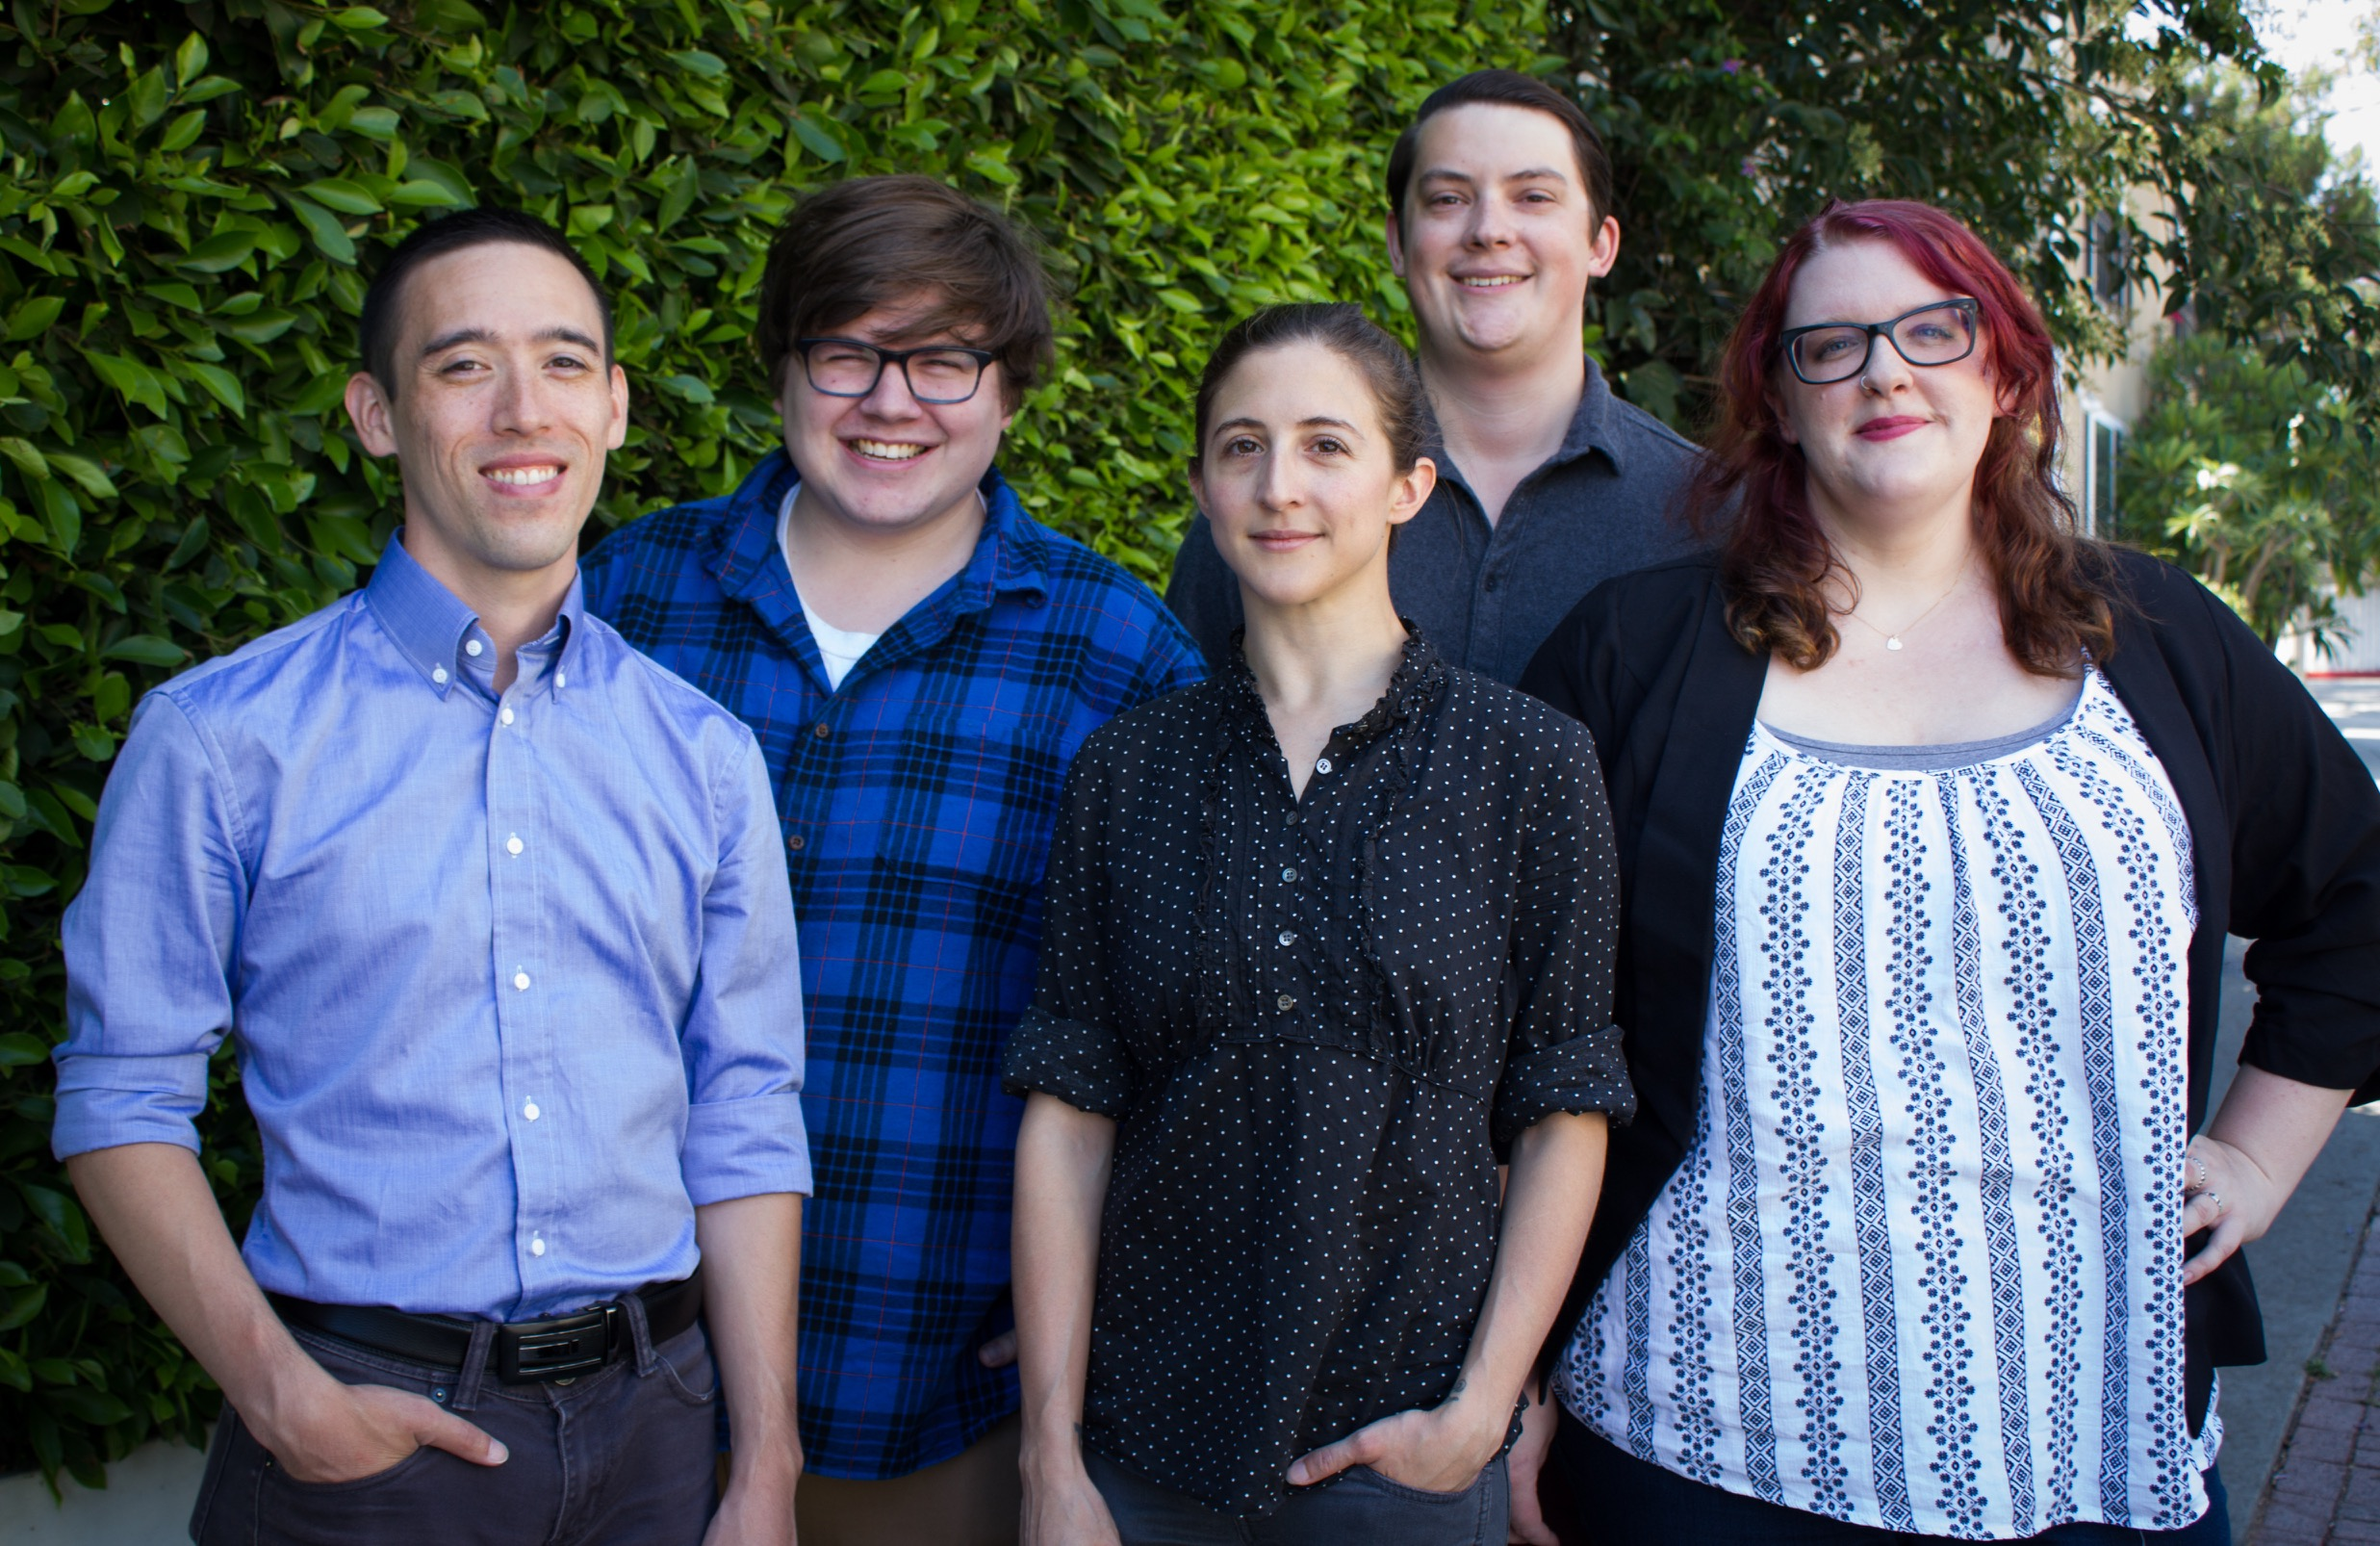 West committee in los angeles, l-r: Matt Latham, Chris Visser, Meaghan WIlbur, Matt Christensen, incoming president Kylee Pena